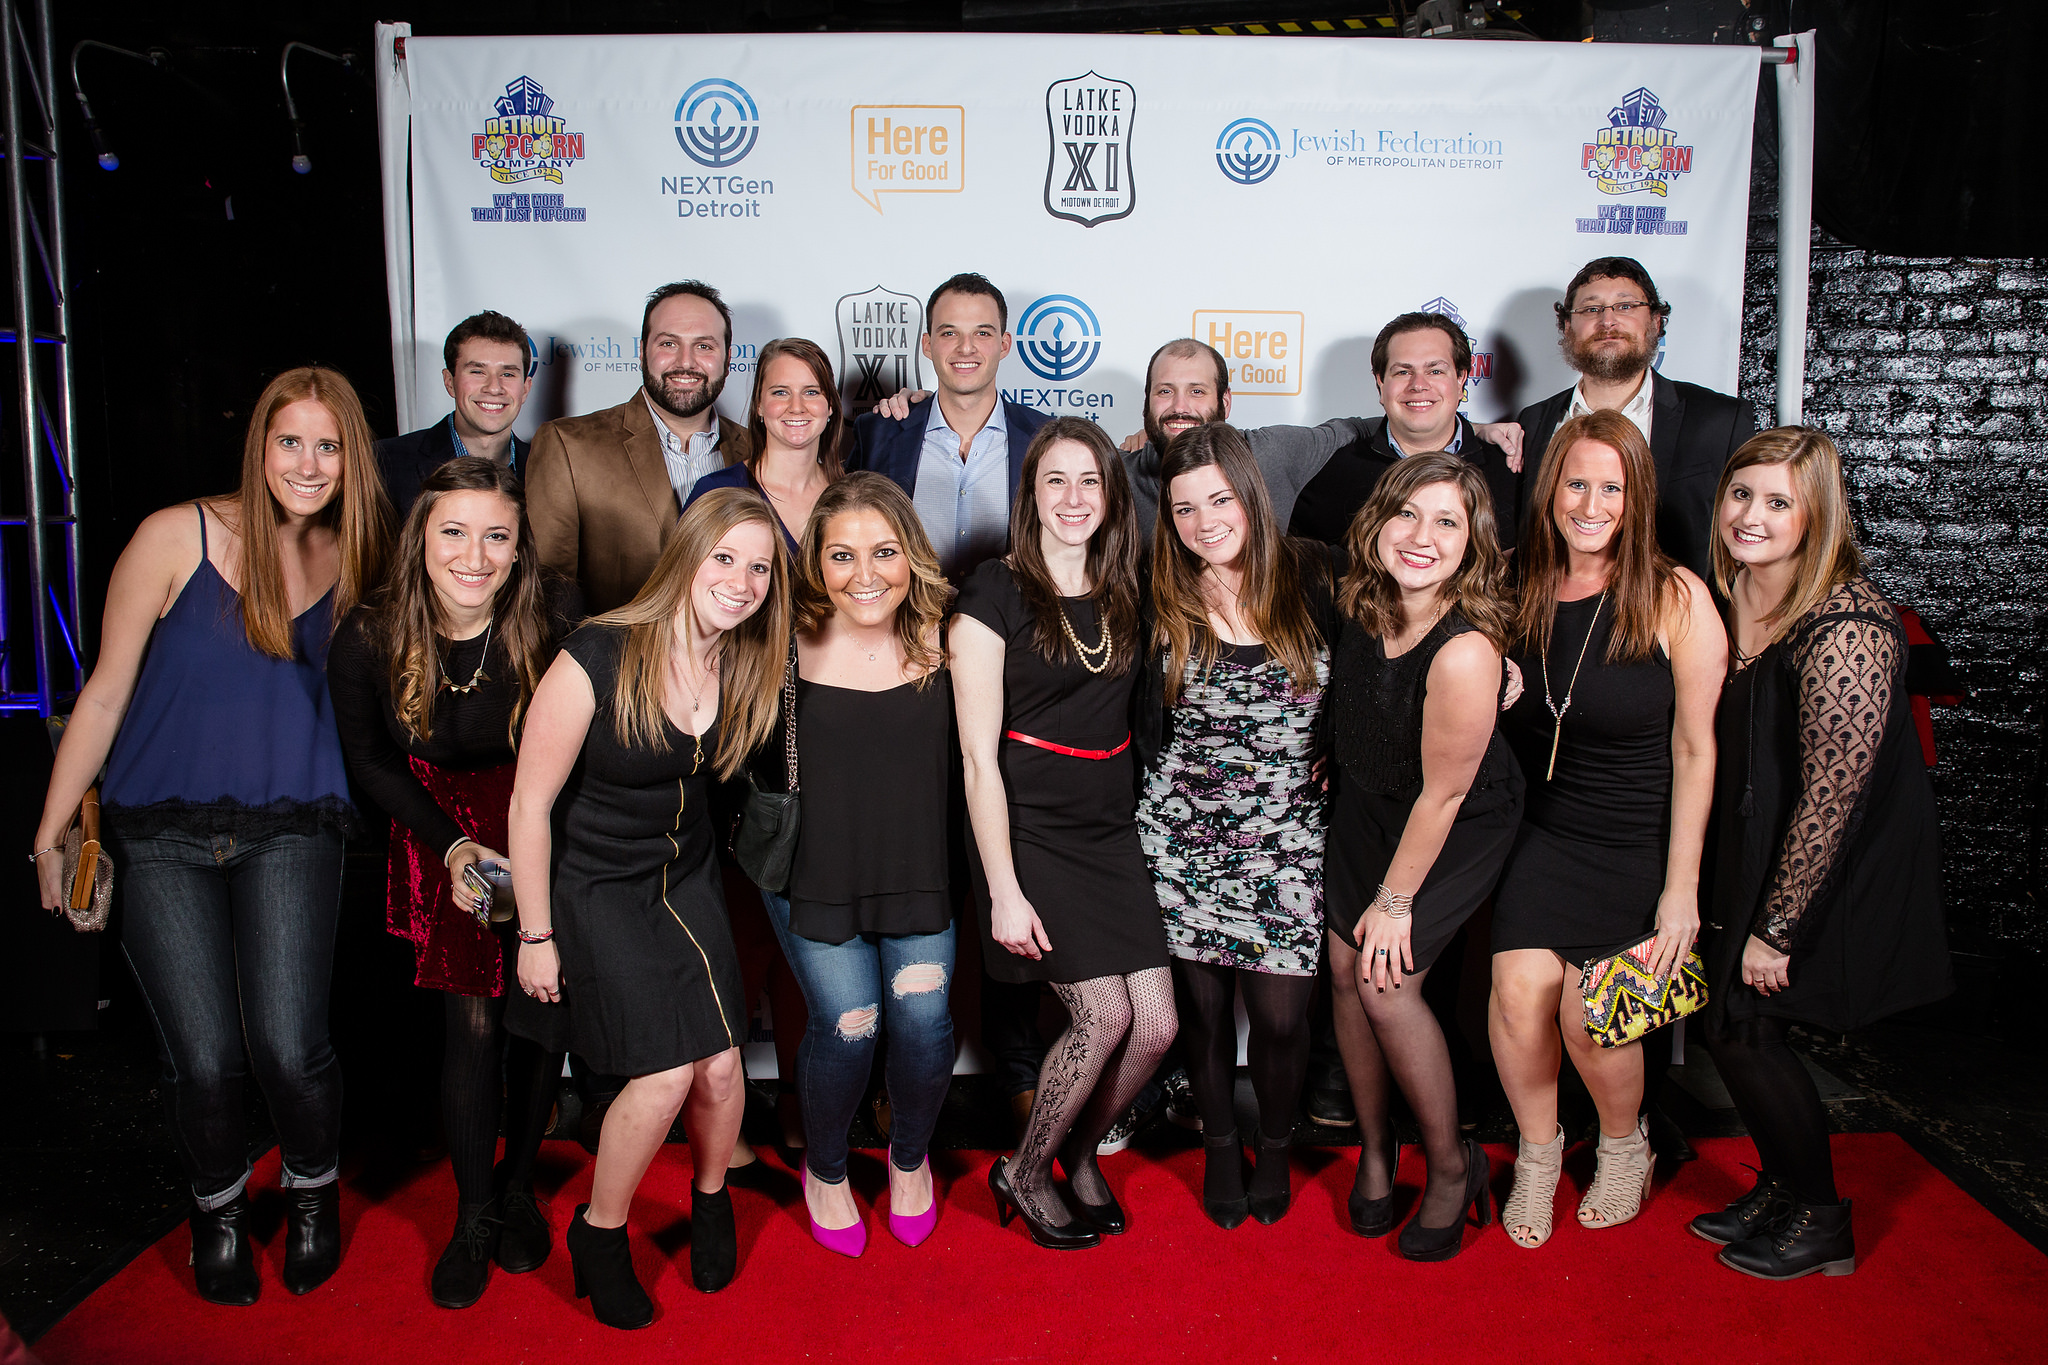 The 2015 Latke Vodka Host Committee